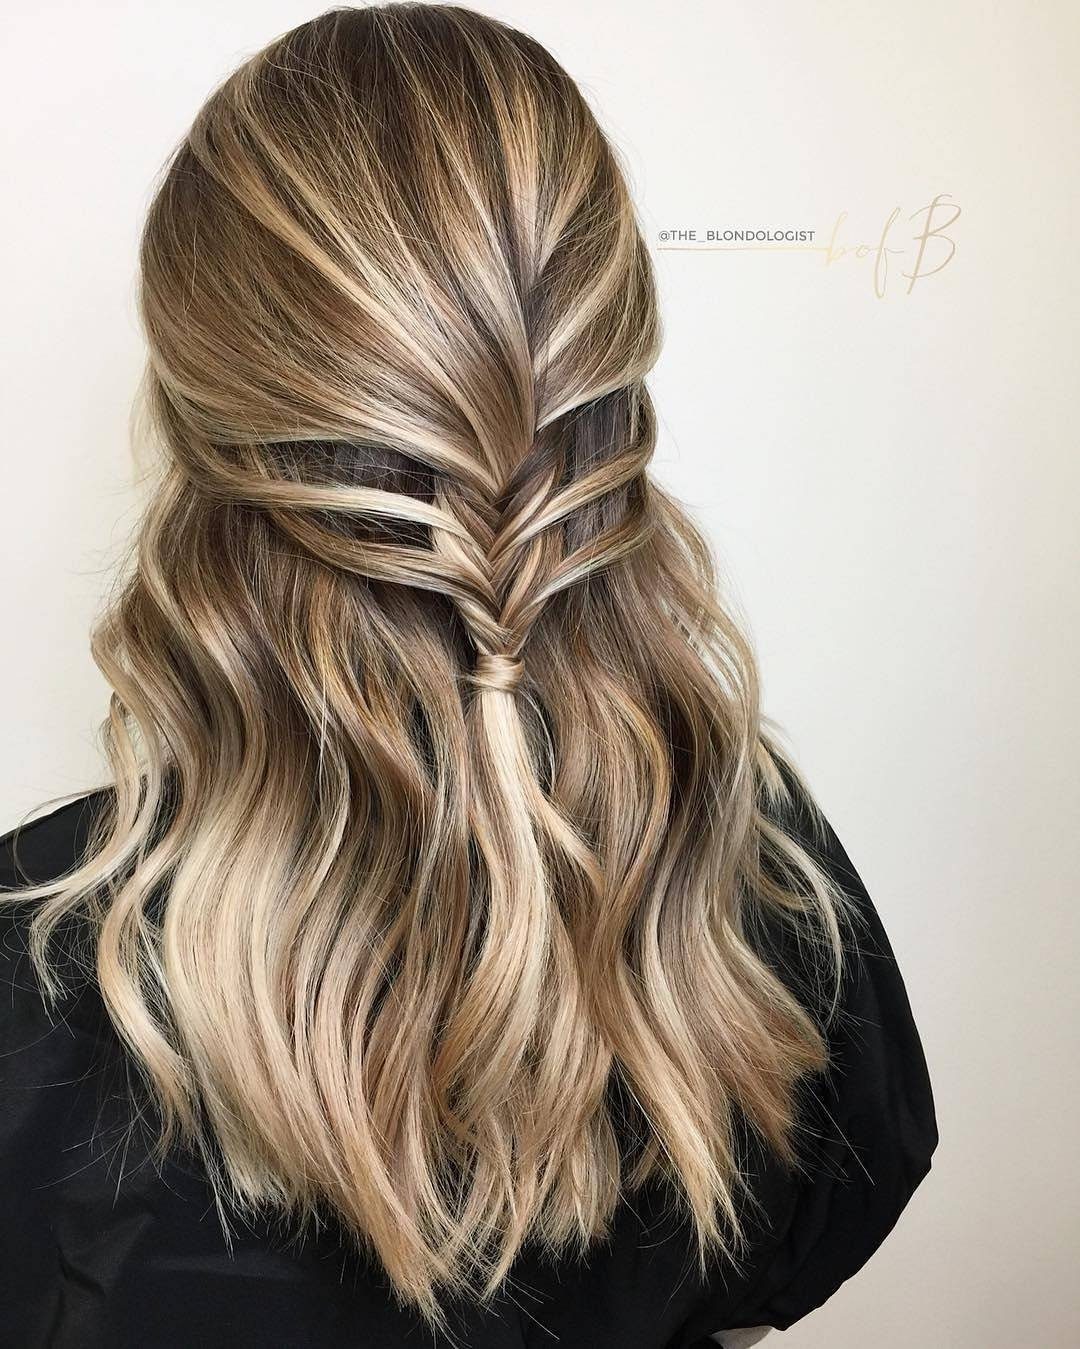 10 Amazing Brown And Blonde Hair Color Ideas 20 beautiful blonde balayage hair color ideas trendy hair color 2017